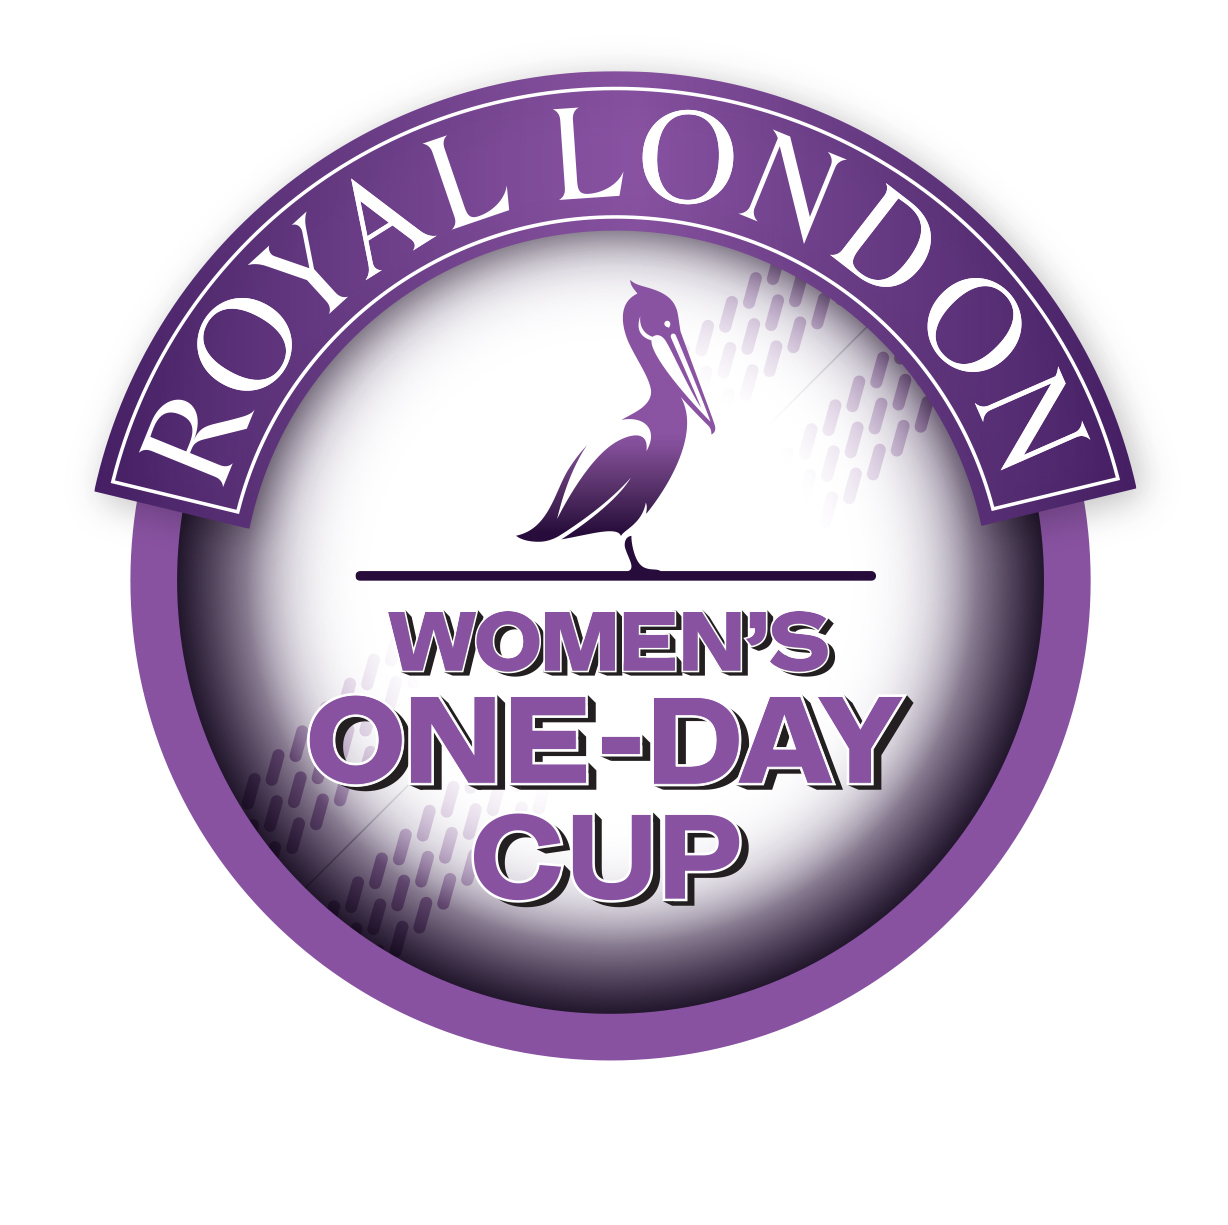 Royal_London_WomenODC_Logo_RGB